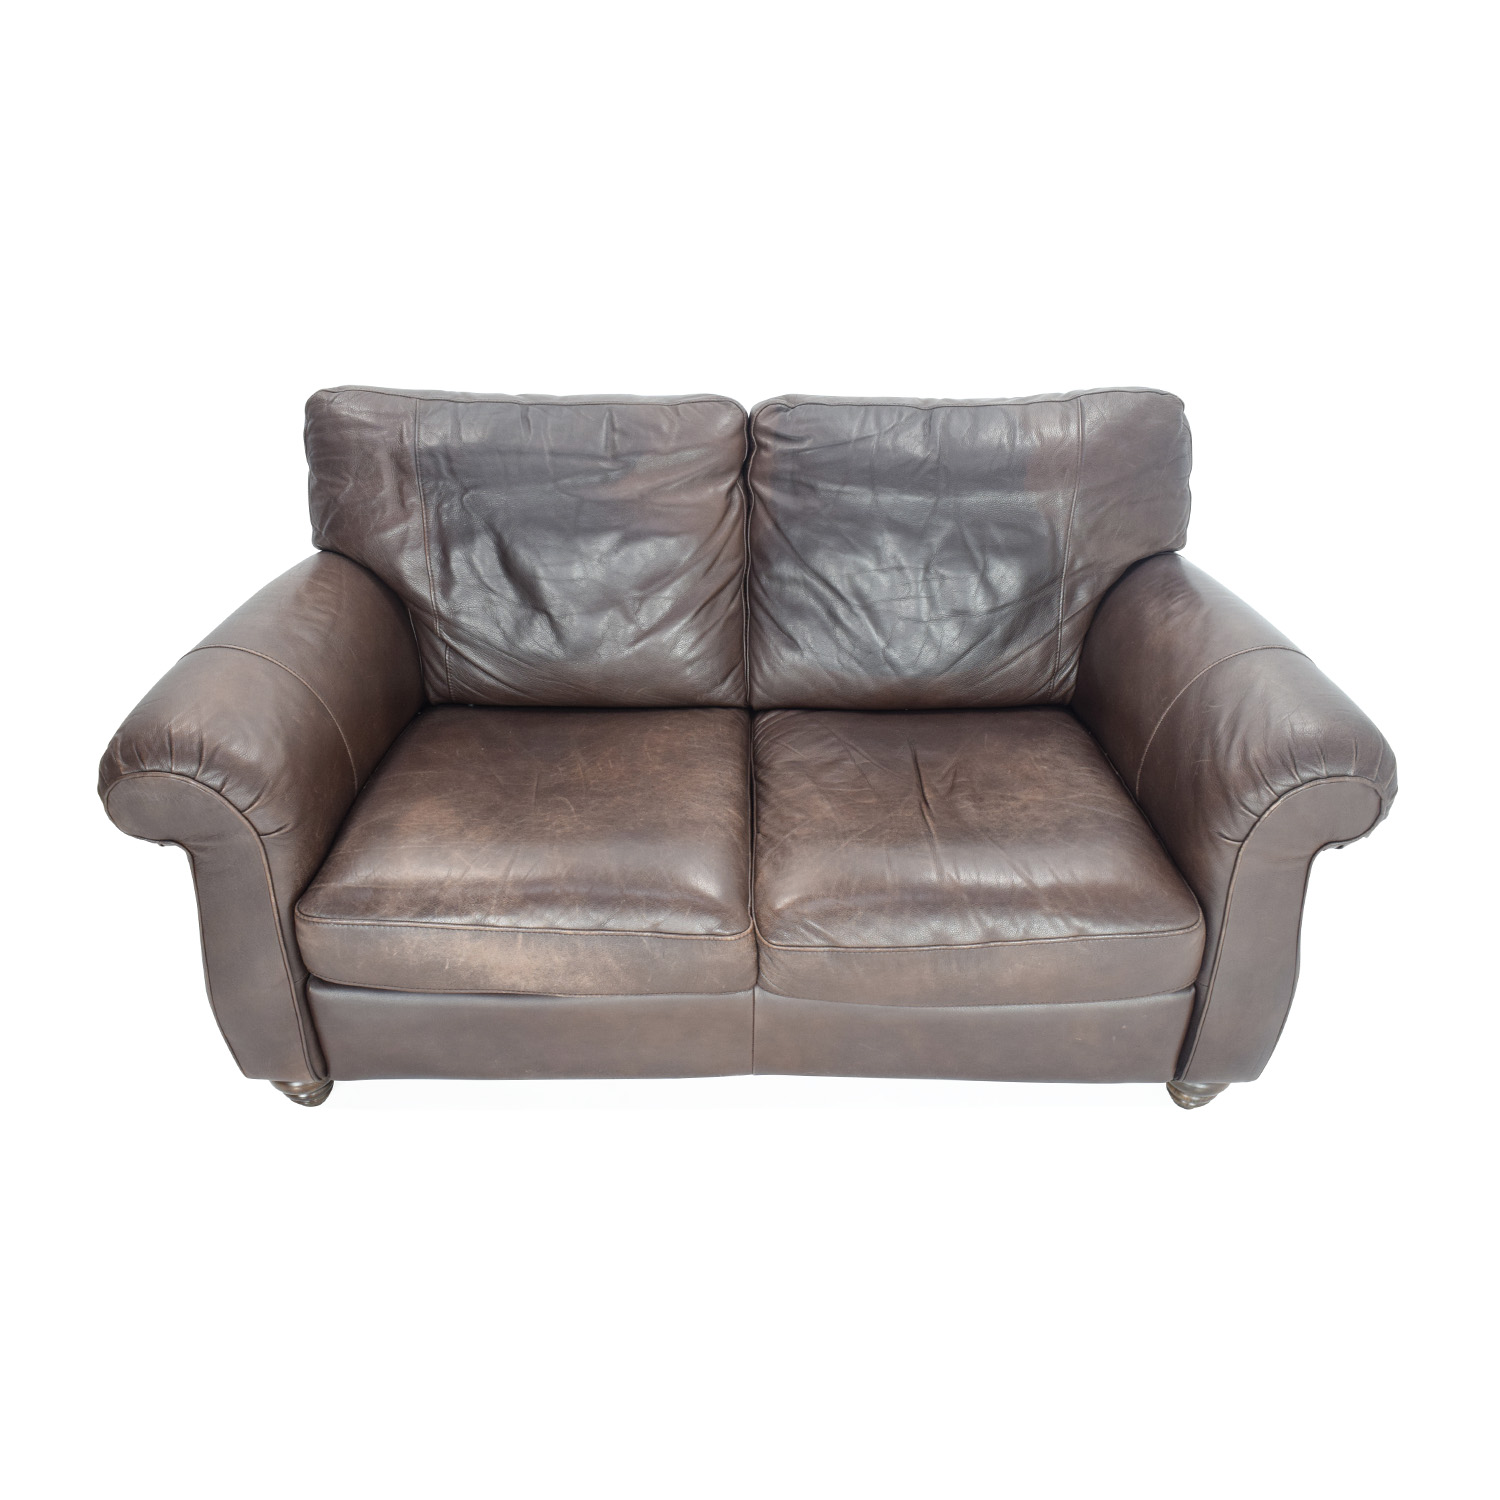 Raymour And Flanigan Natuzzi Sofas 28 Images Browse Natuzzi Editions Leather Furniture At R